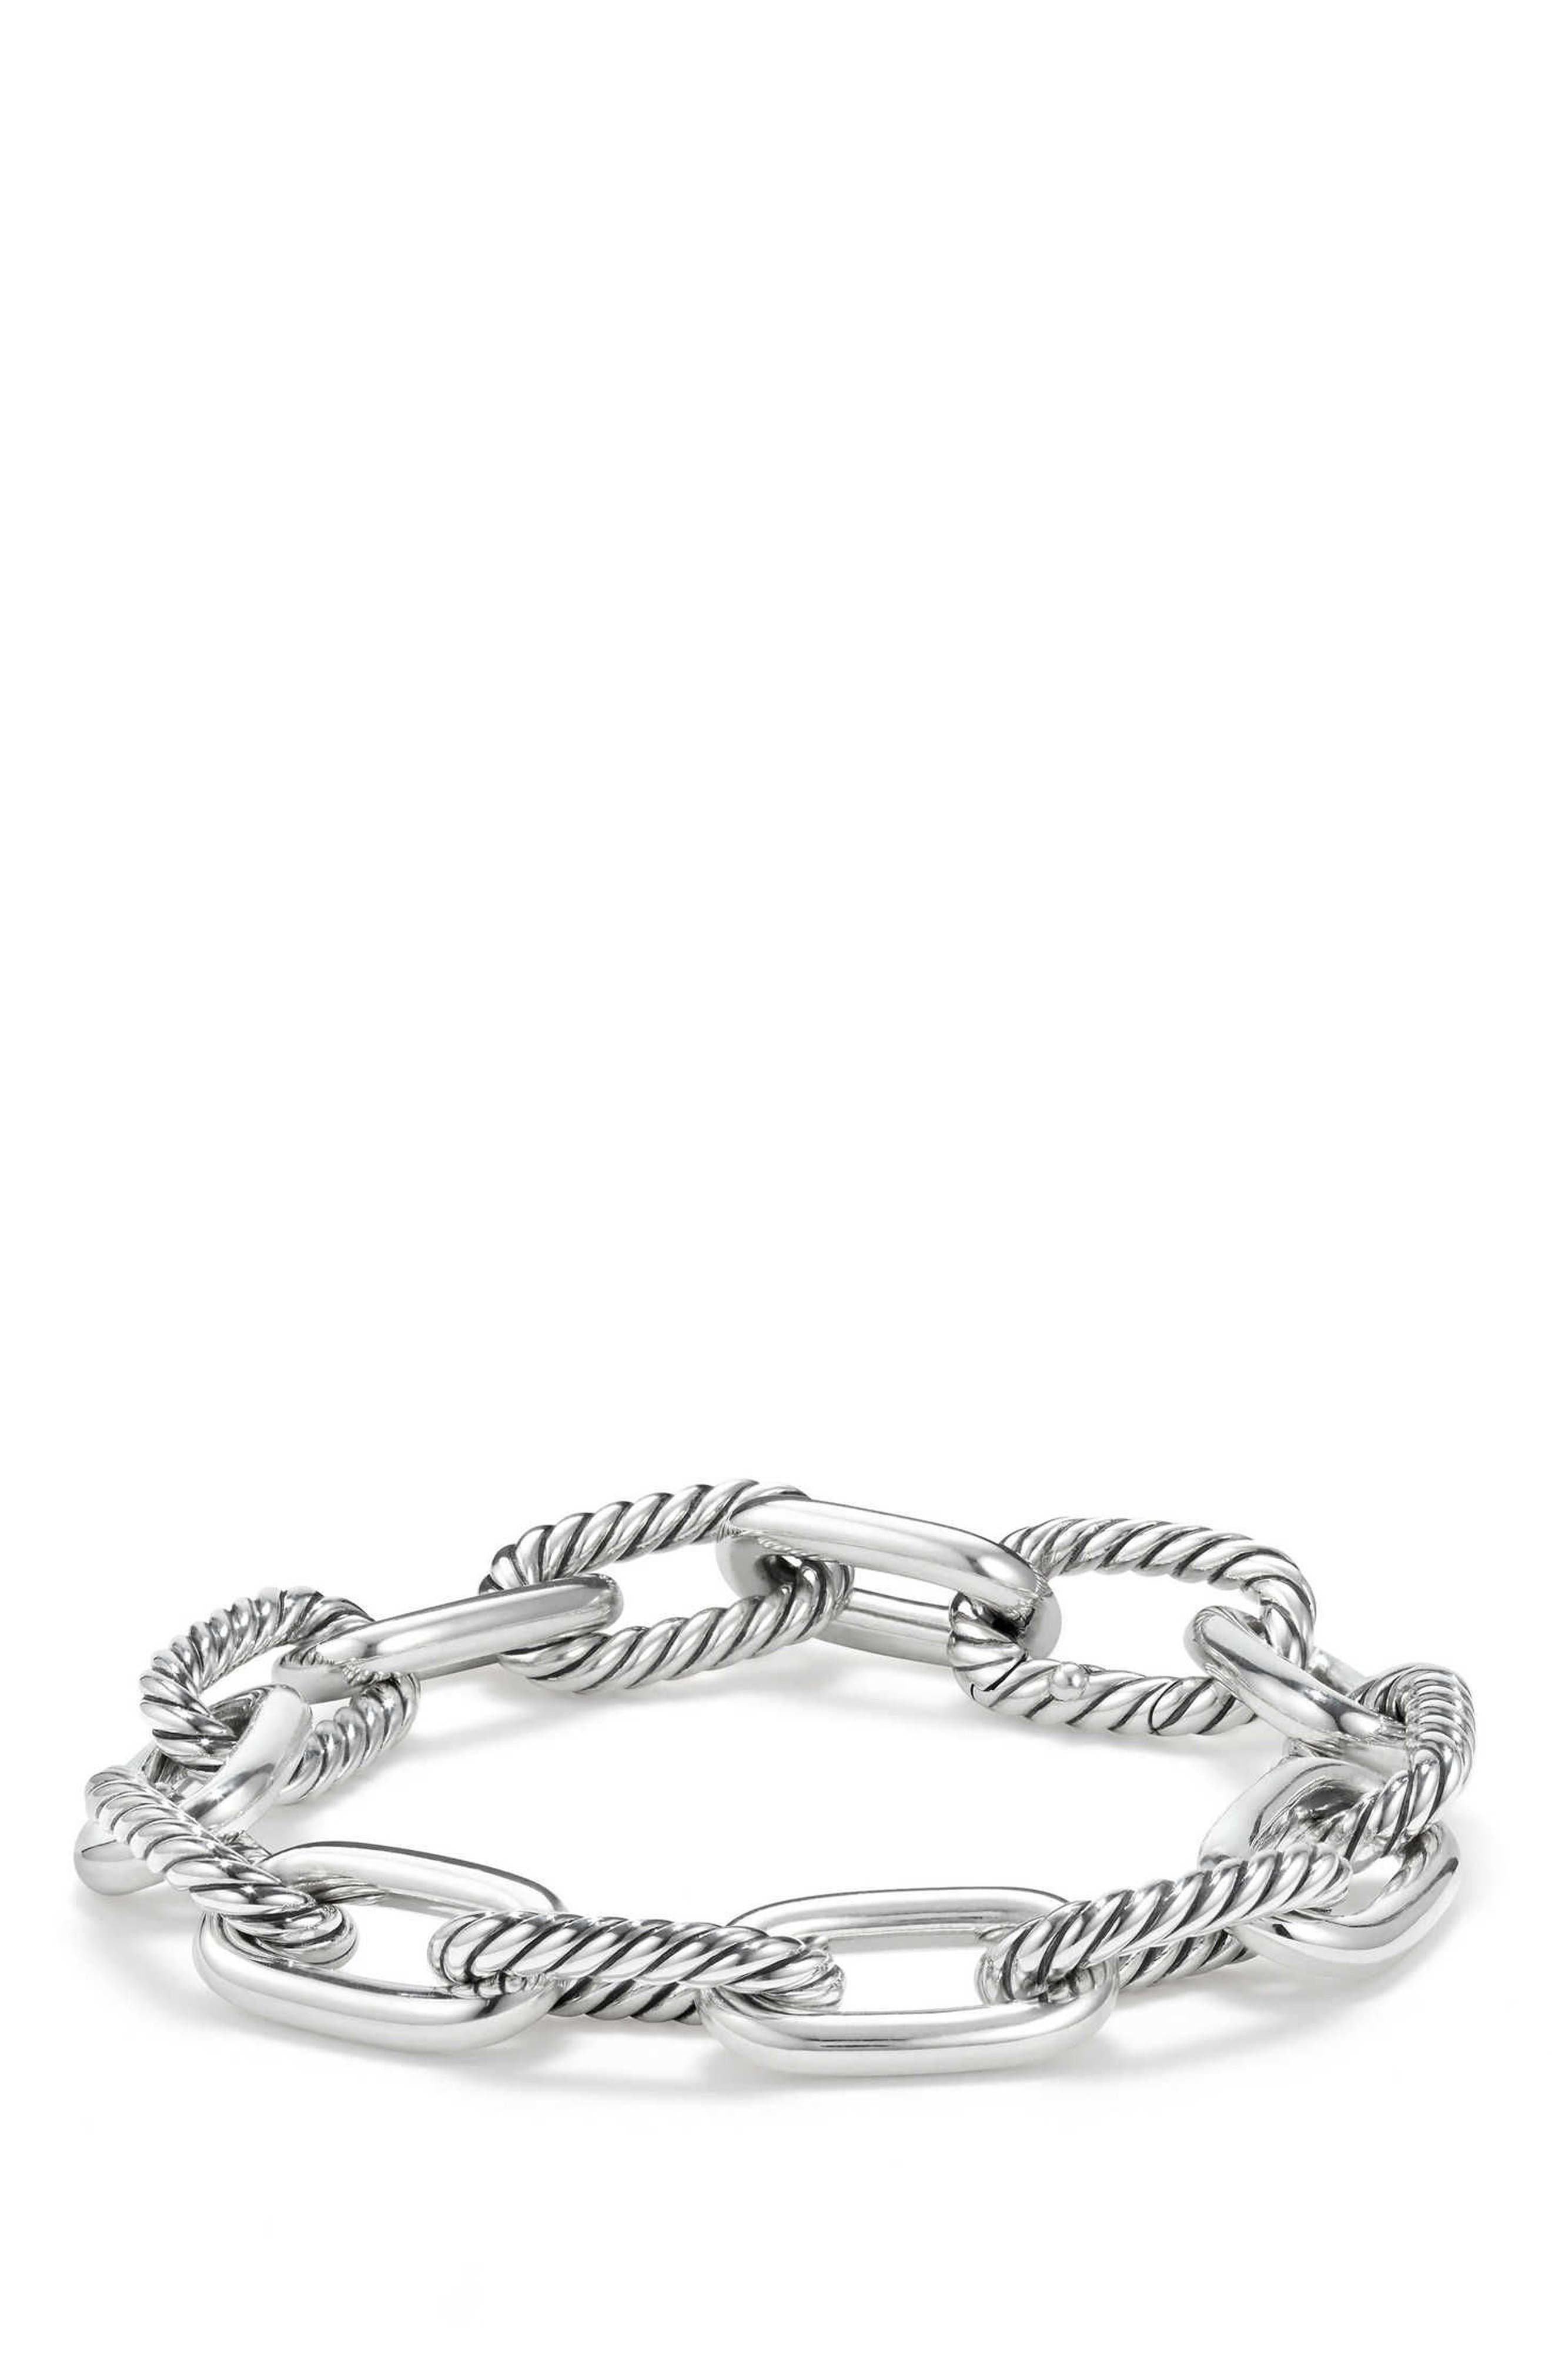 DY Madison Chain Medium Bracelet,                         Main,                         color, Silver